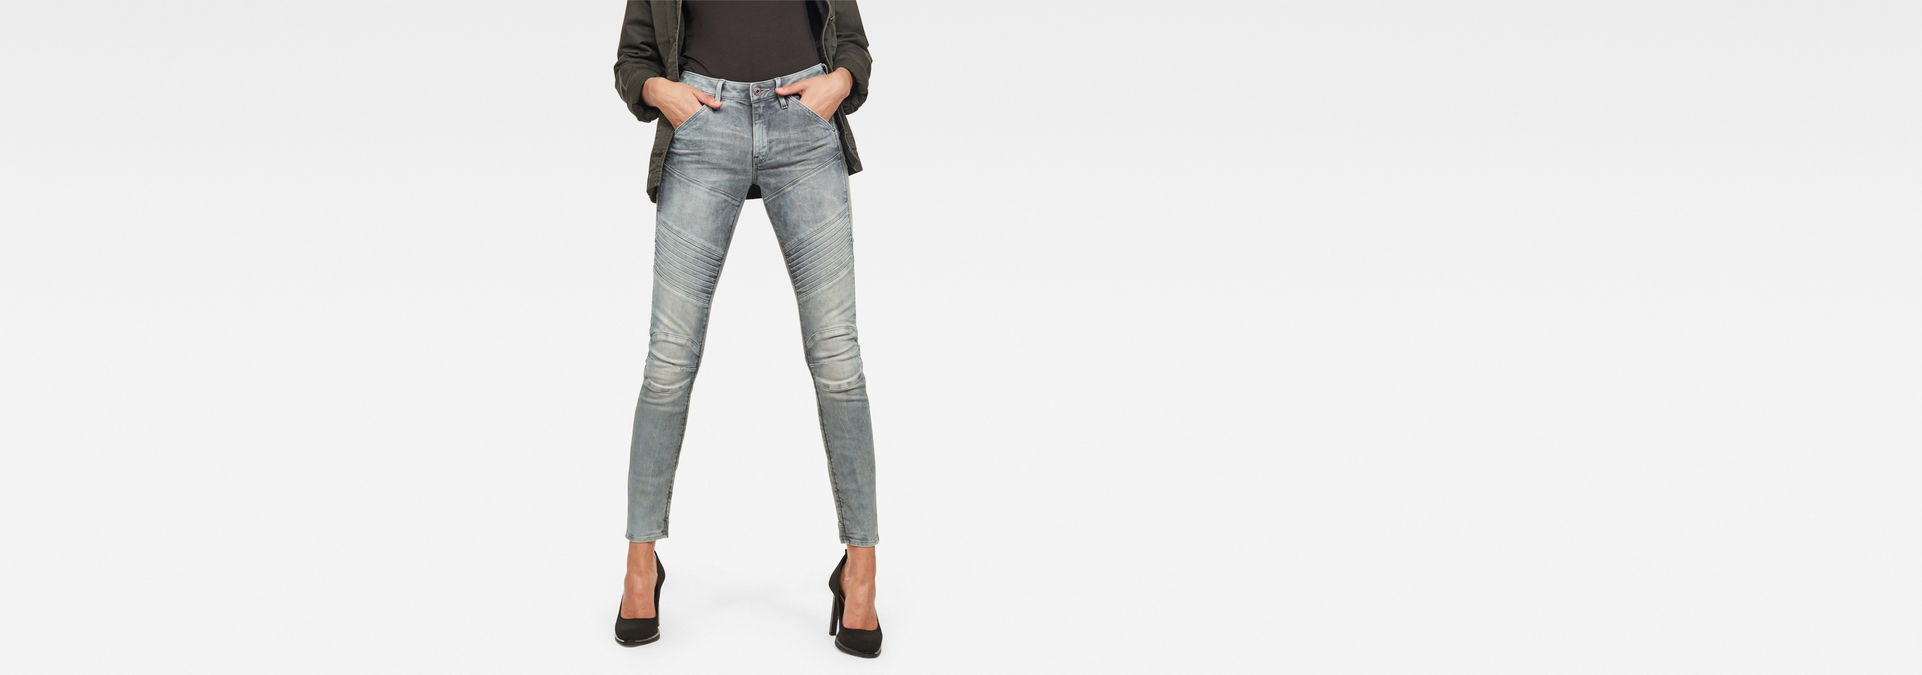 5620 Custom Mid Waist Skinny Jeans | Medium Aged | G Star RAW®